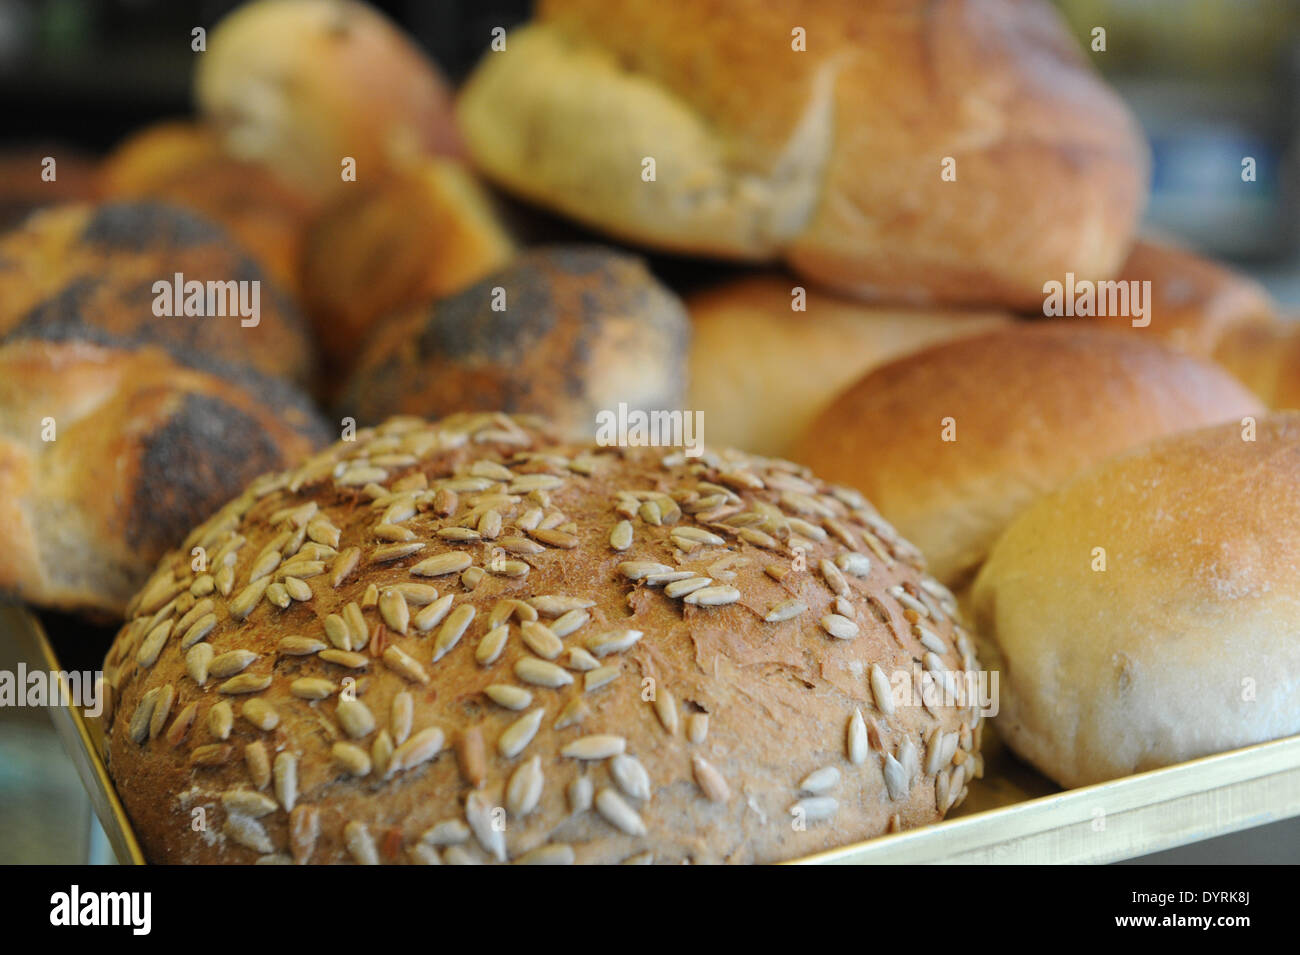 Bread and rolls from the bakery Artur Herrmann in Munich, 2012 - Stock Image